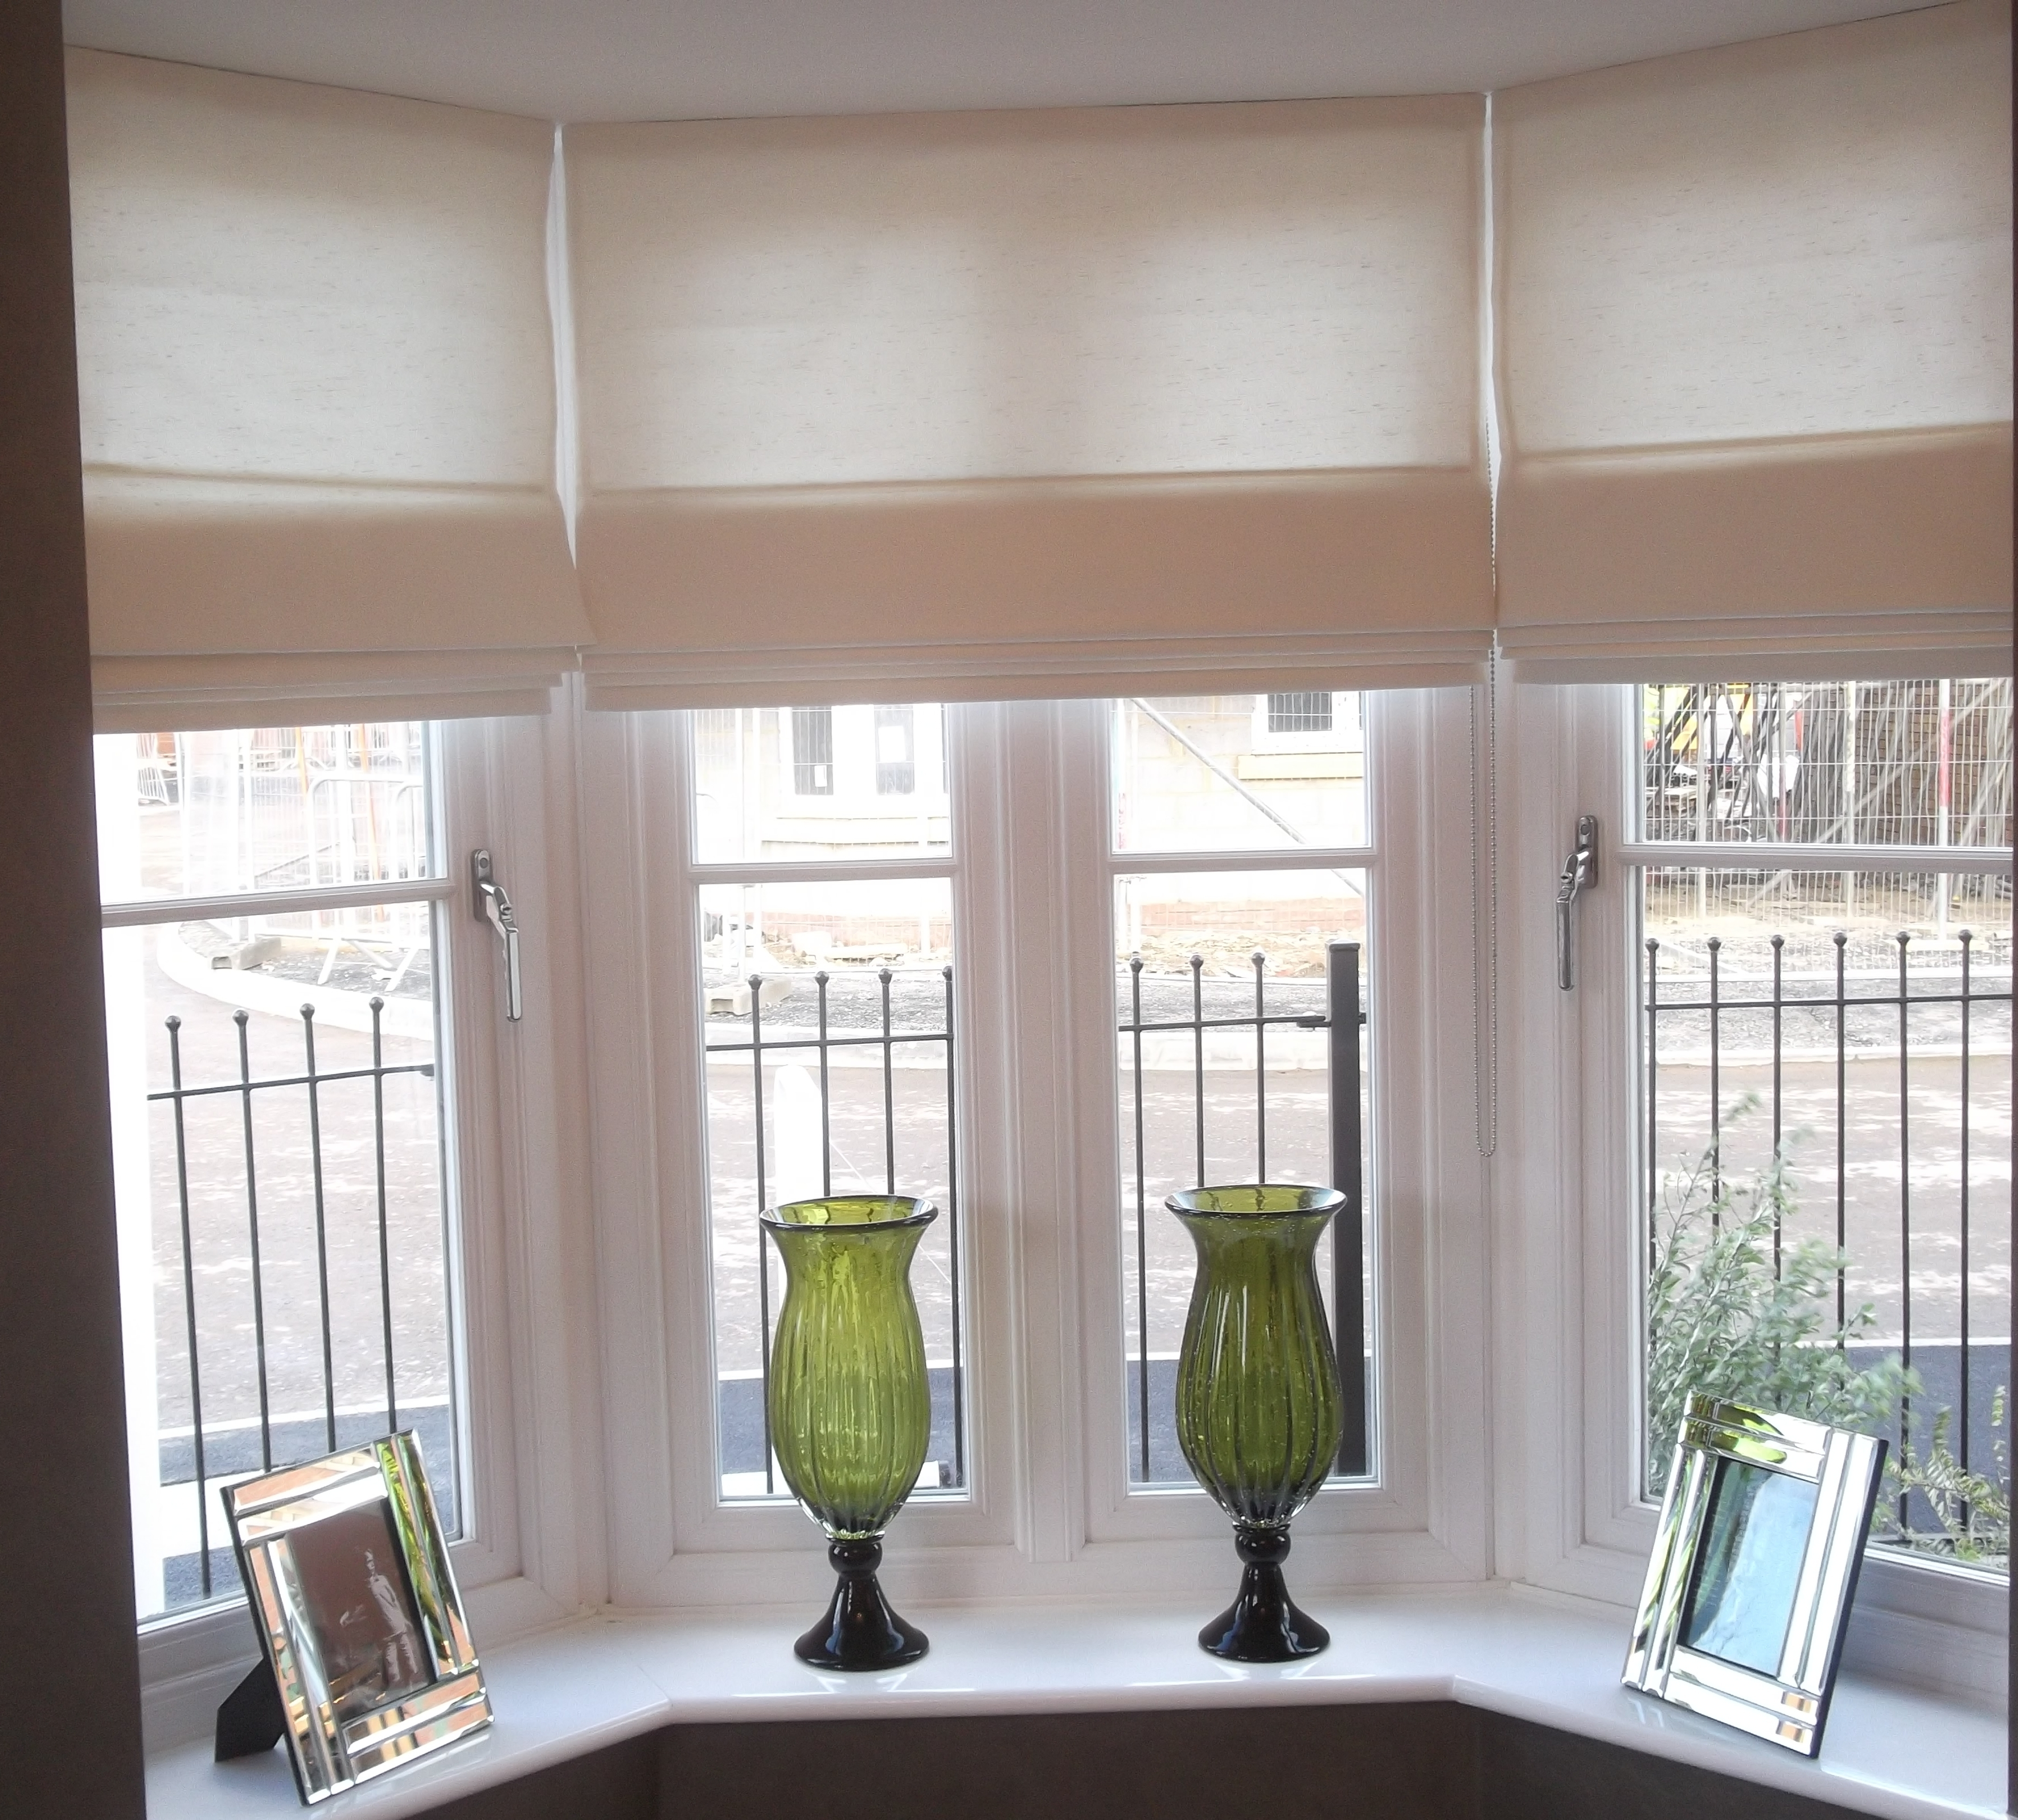 Dressing A Square Bay Window Is Quite A Challenge But When Regarding Roman Blinds On Bay Windows (Image 4 of 15)